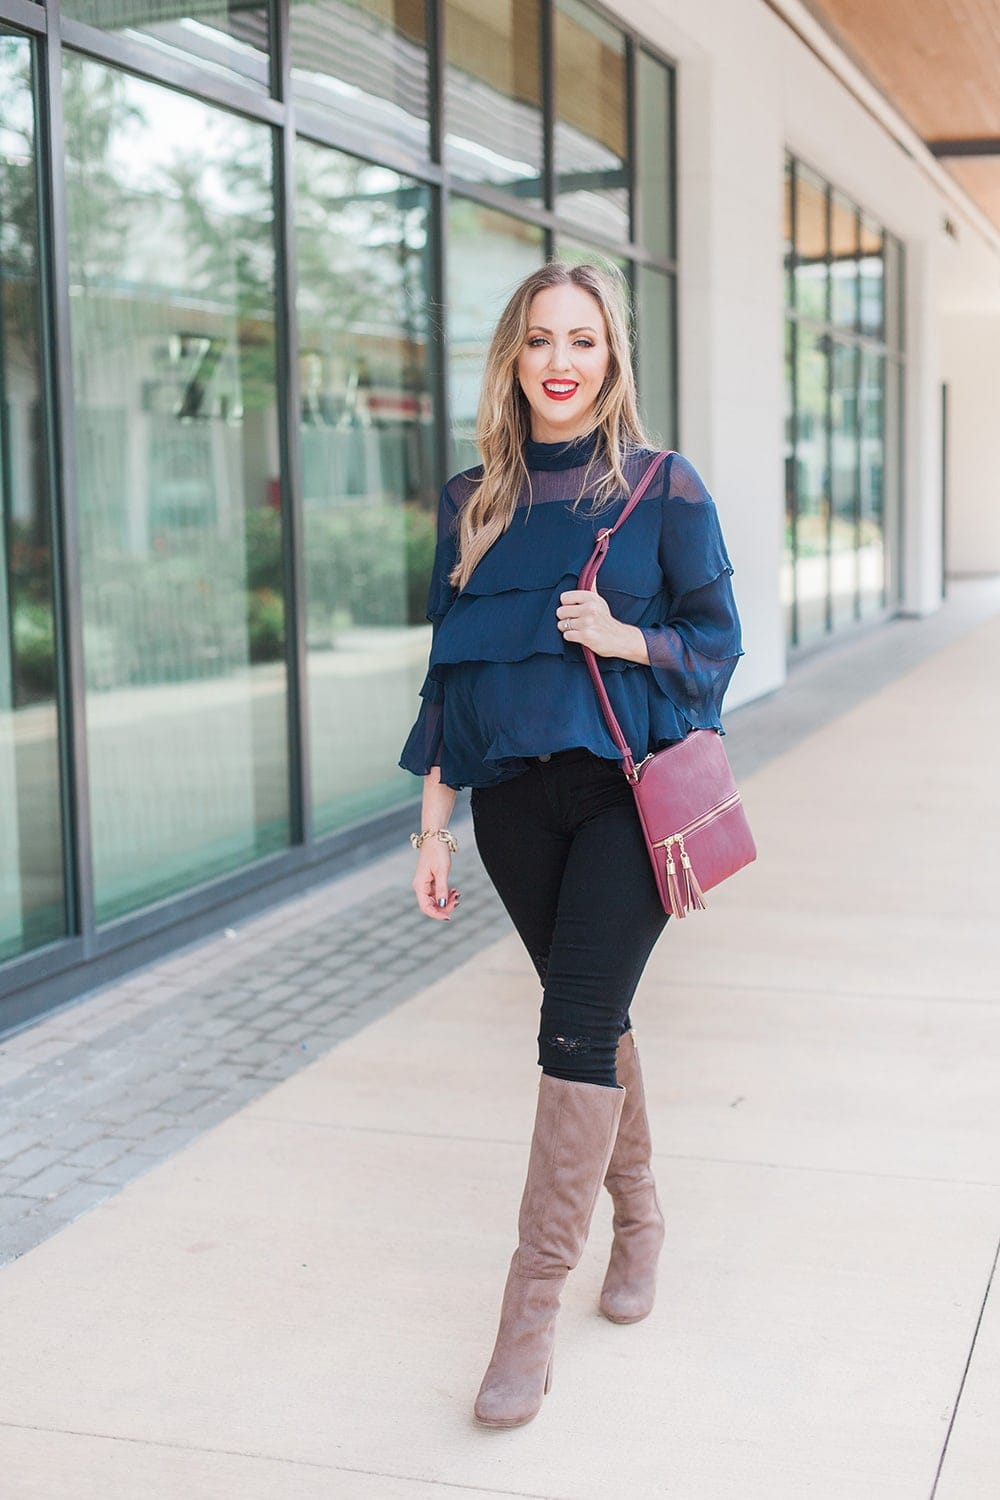 gorgeous fall or holiday outfit idea - ruffle blouse with distressed denim and tall boots